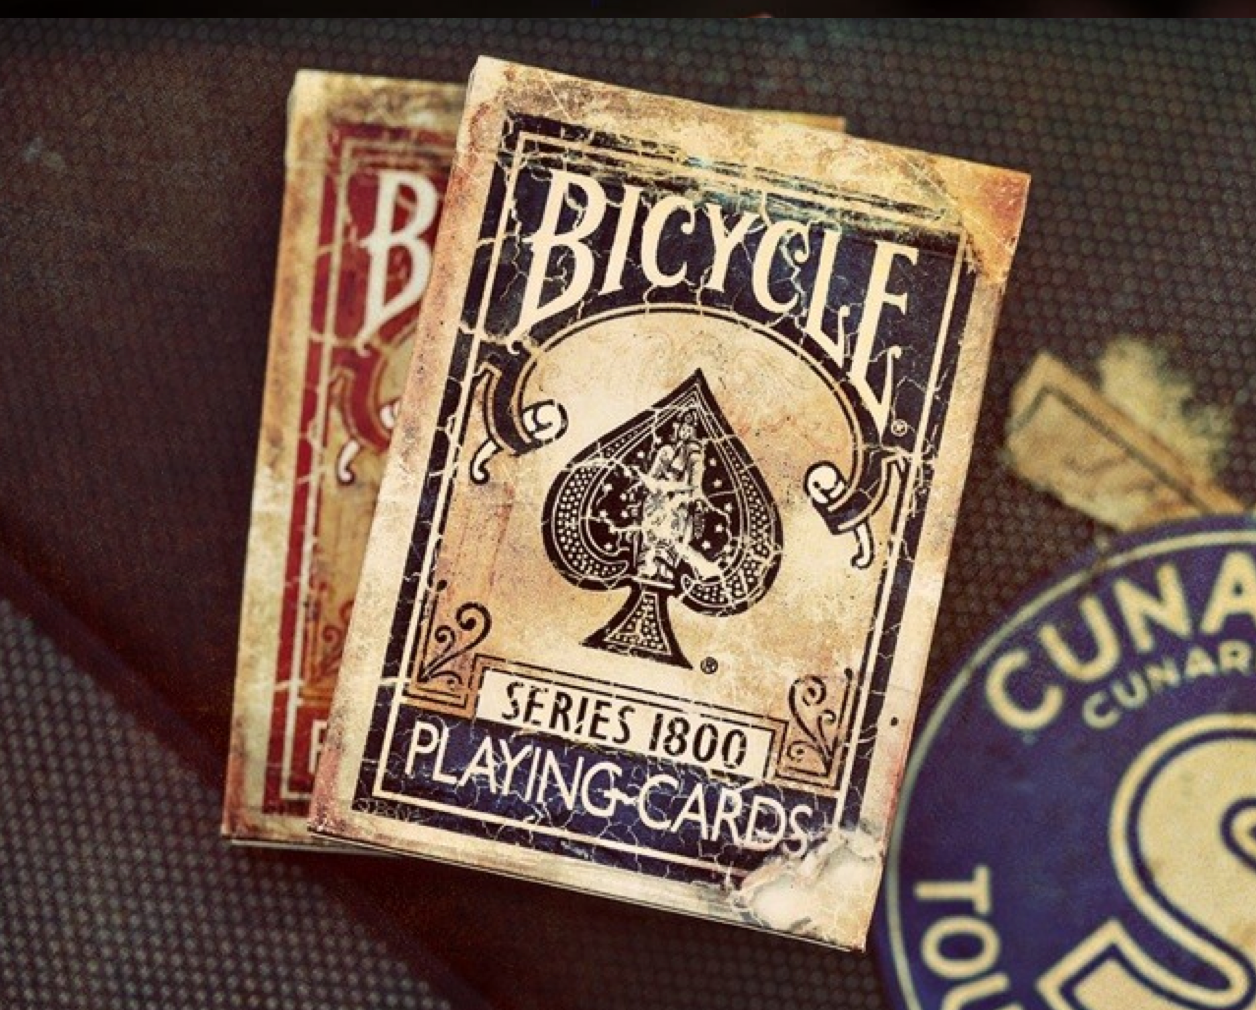 Beautiful playing cards from Ellusionist